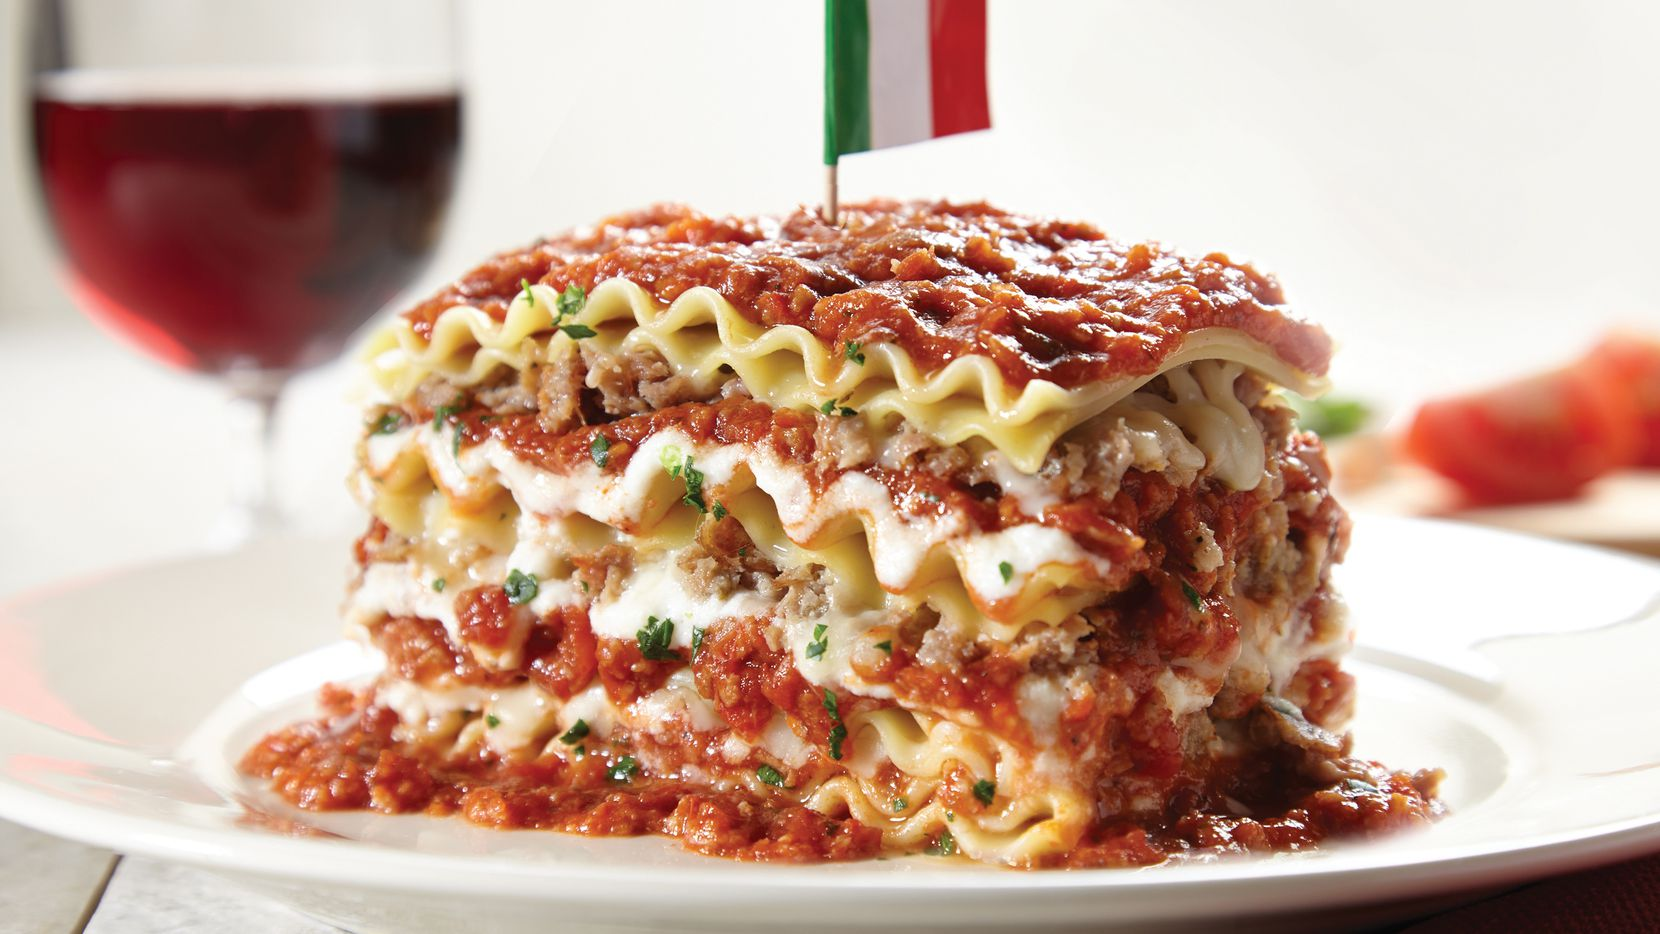 Spaghetti Warehouse's 15-layer lasagne is one of the most popular dishes. Go get a bite before the historic restaurant closes on Sunday, Oct. 20, 2019.